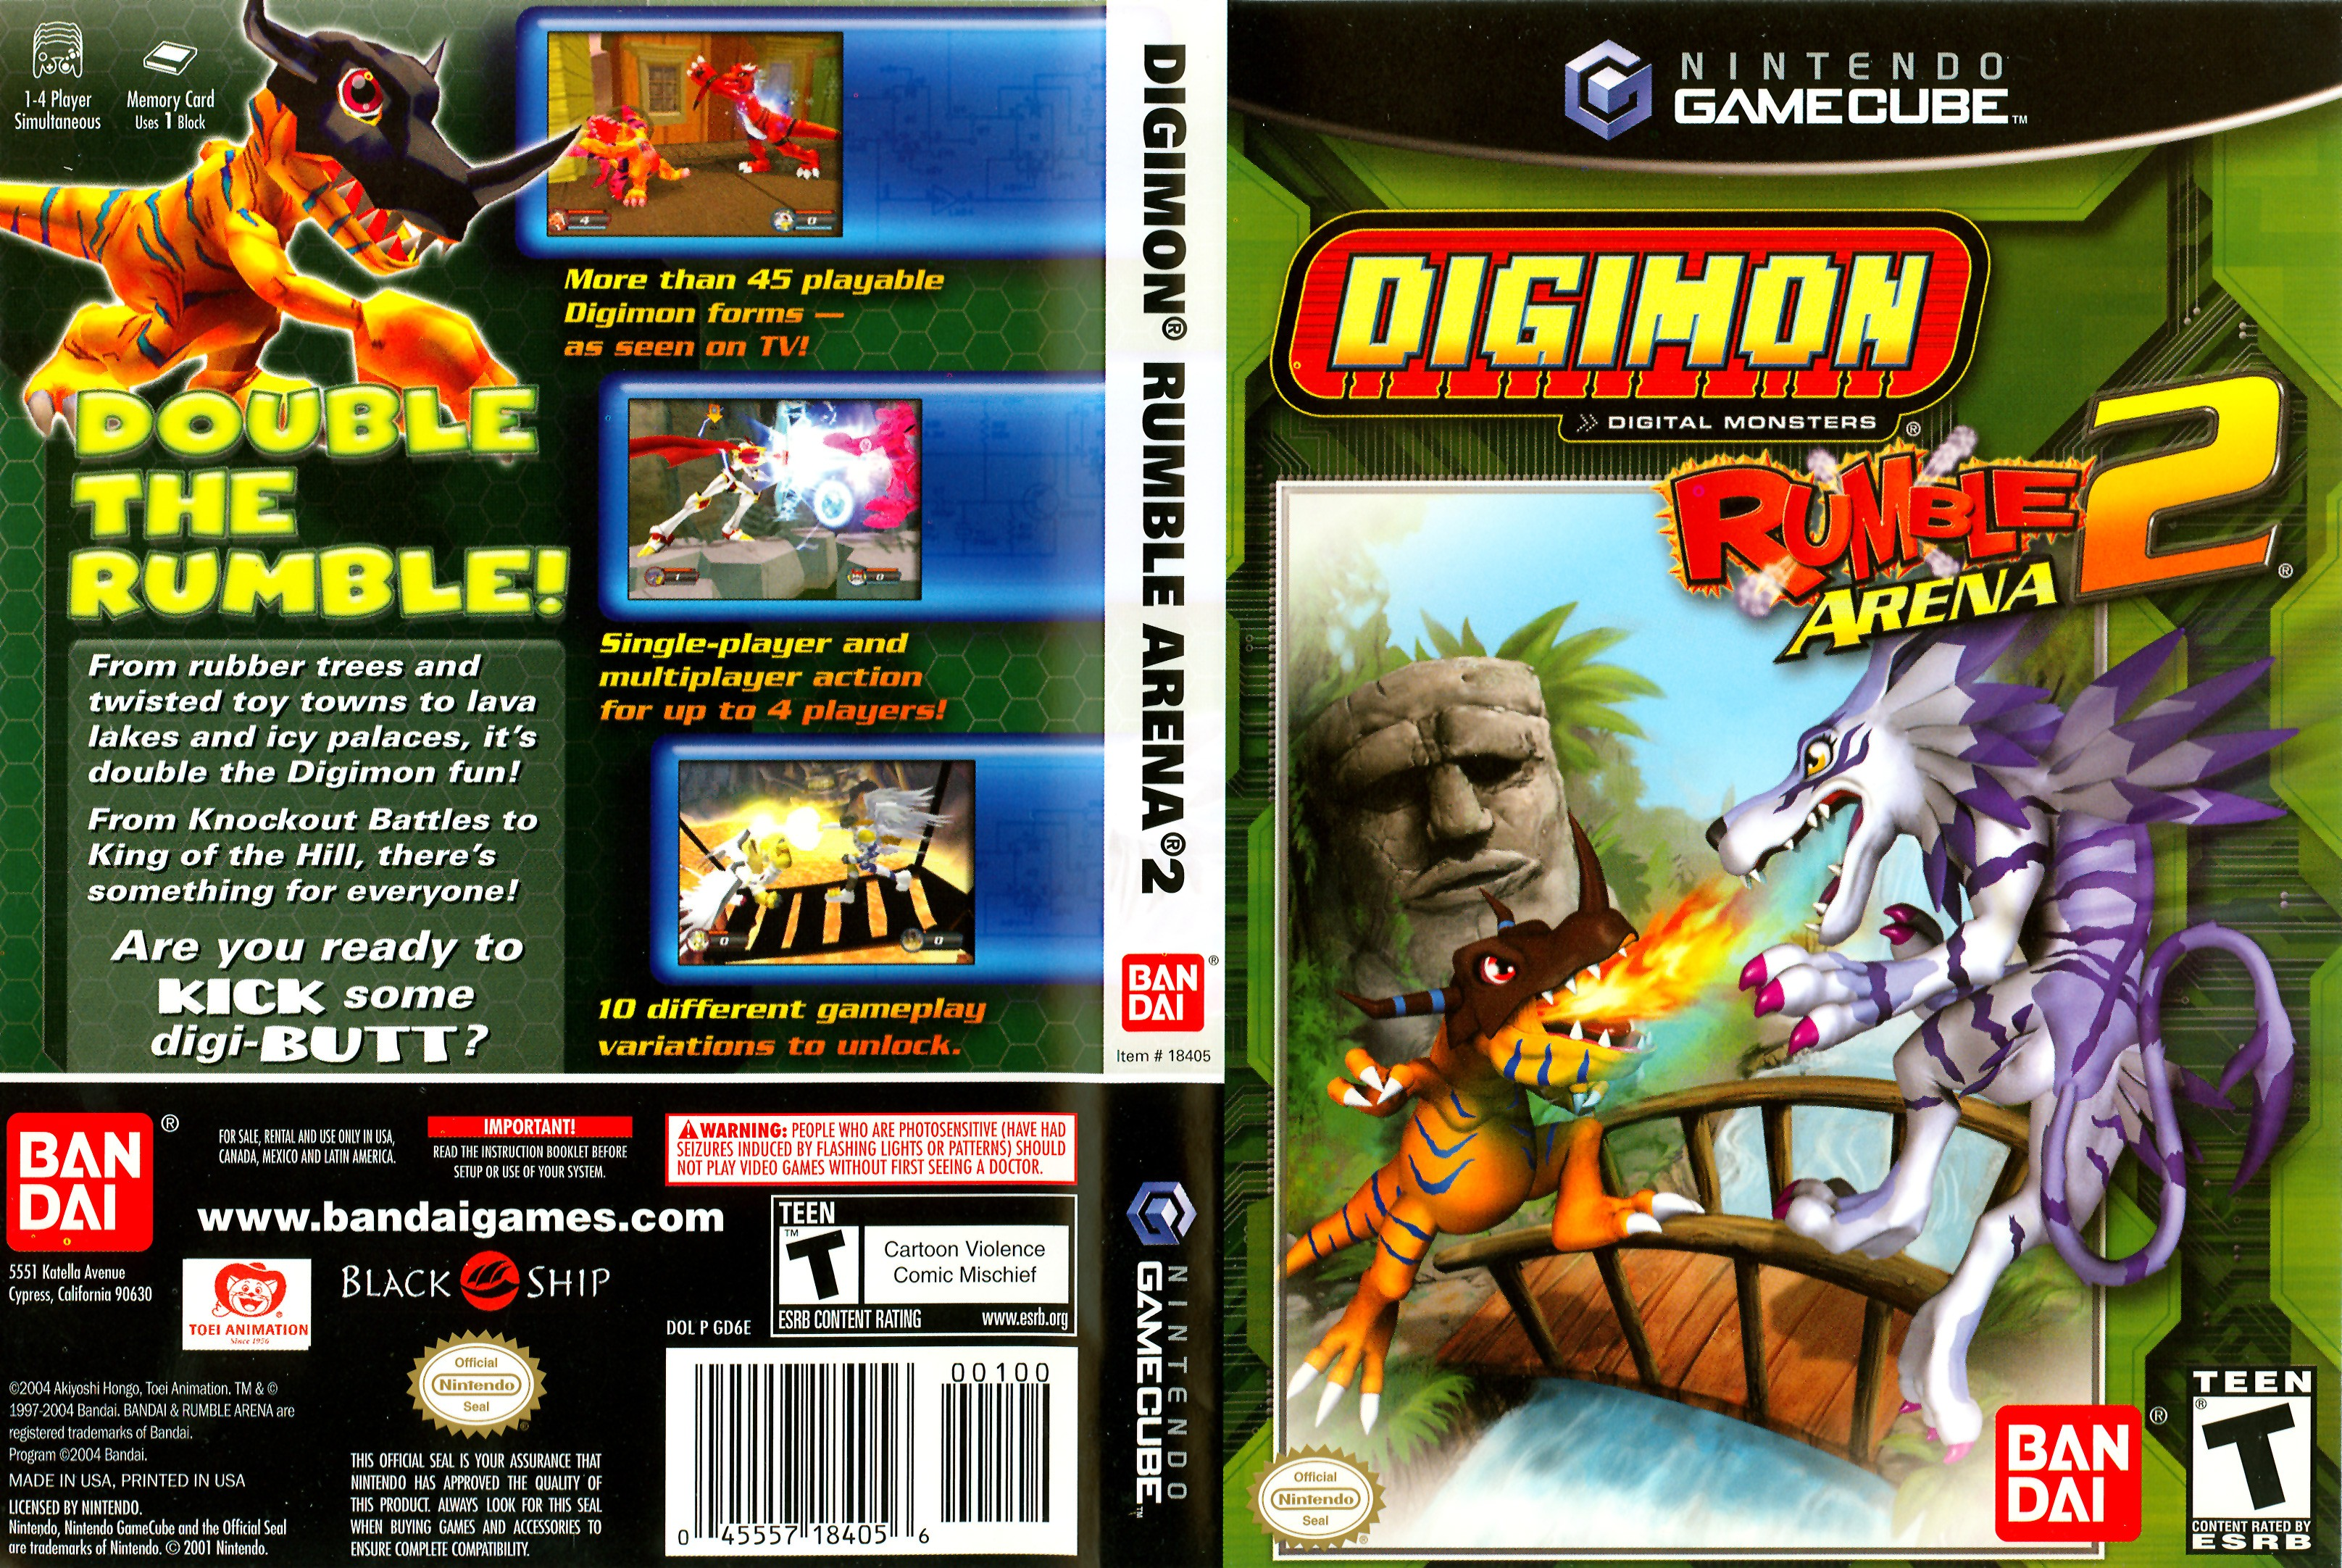 Digimon rumble arena 2 cover click for full size image